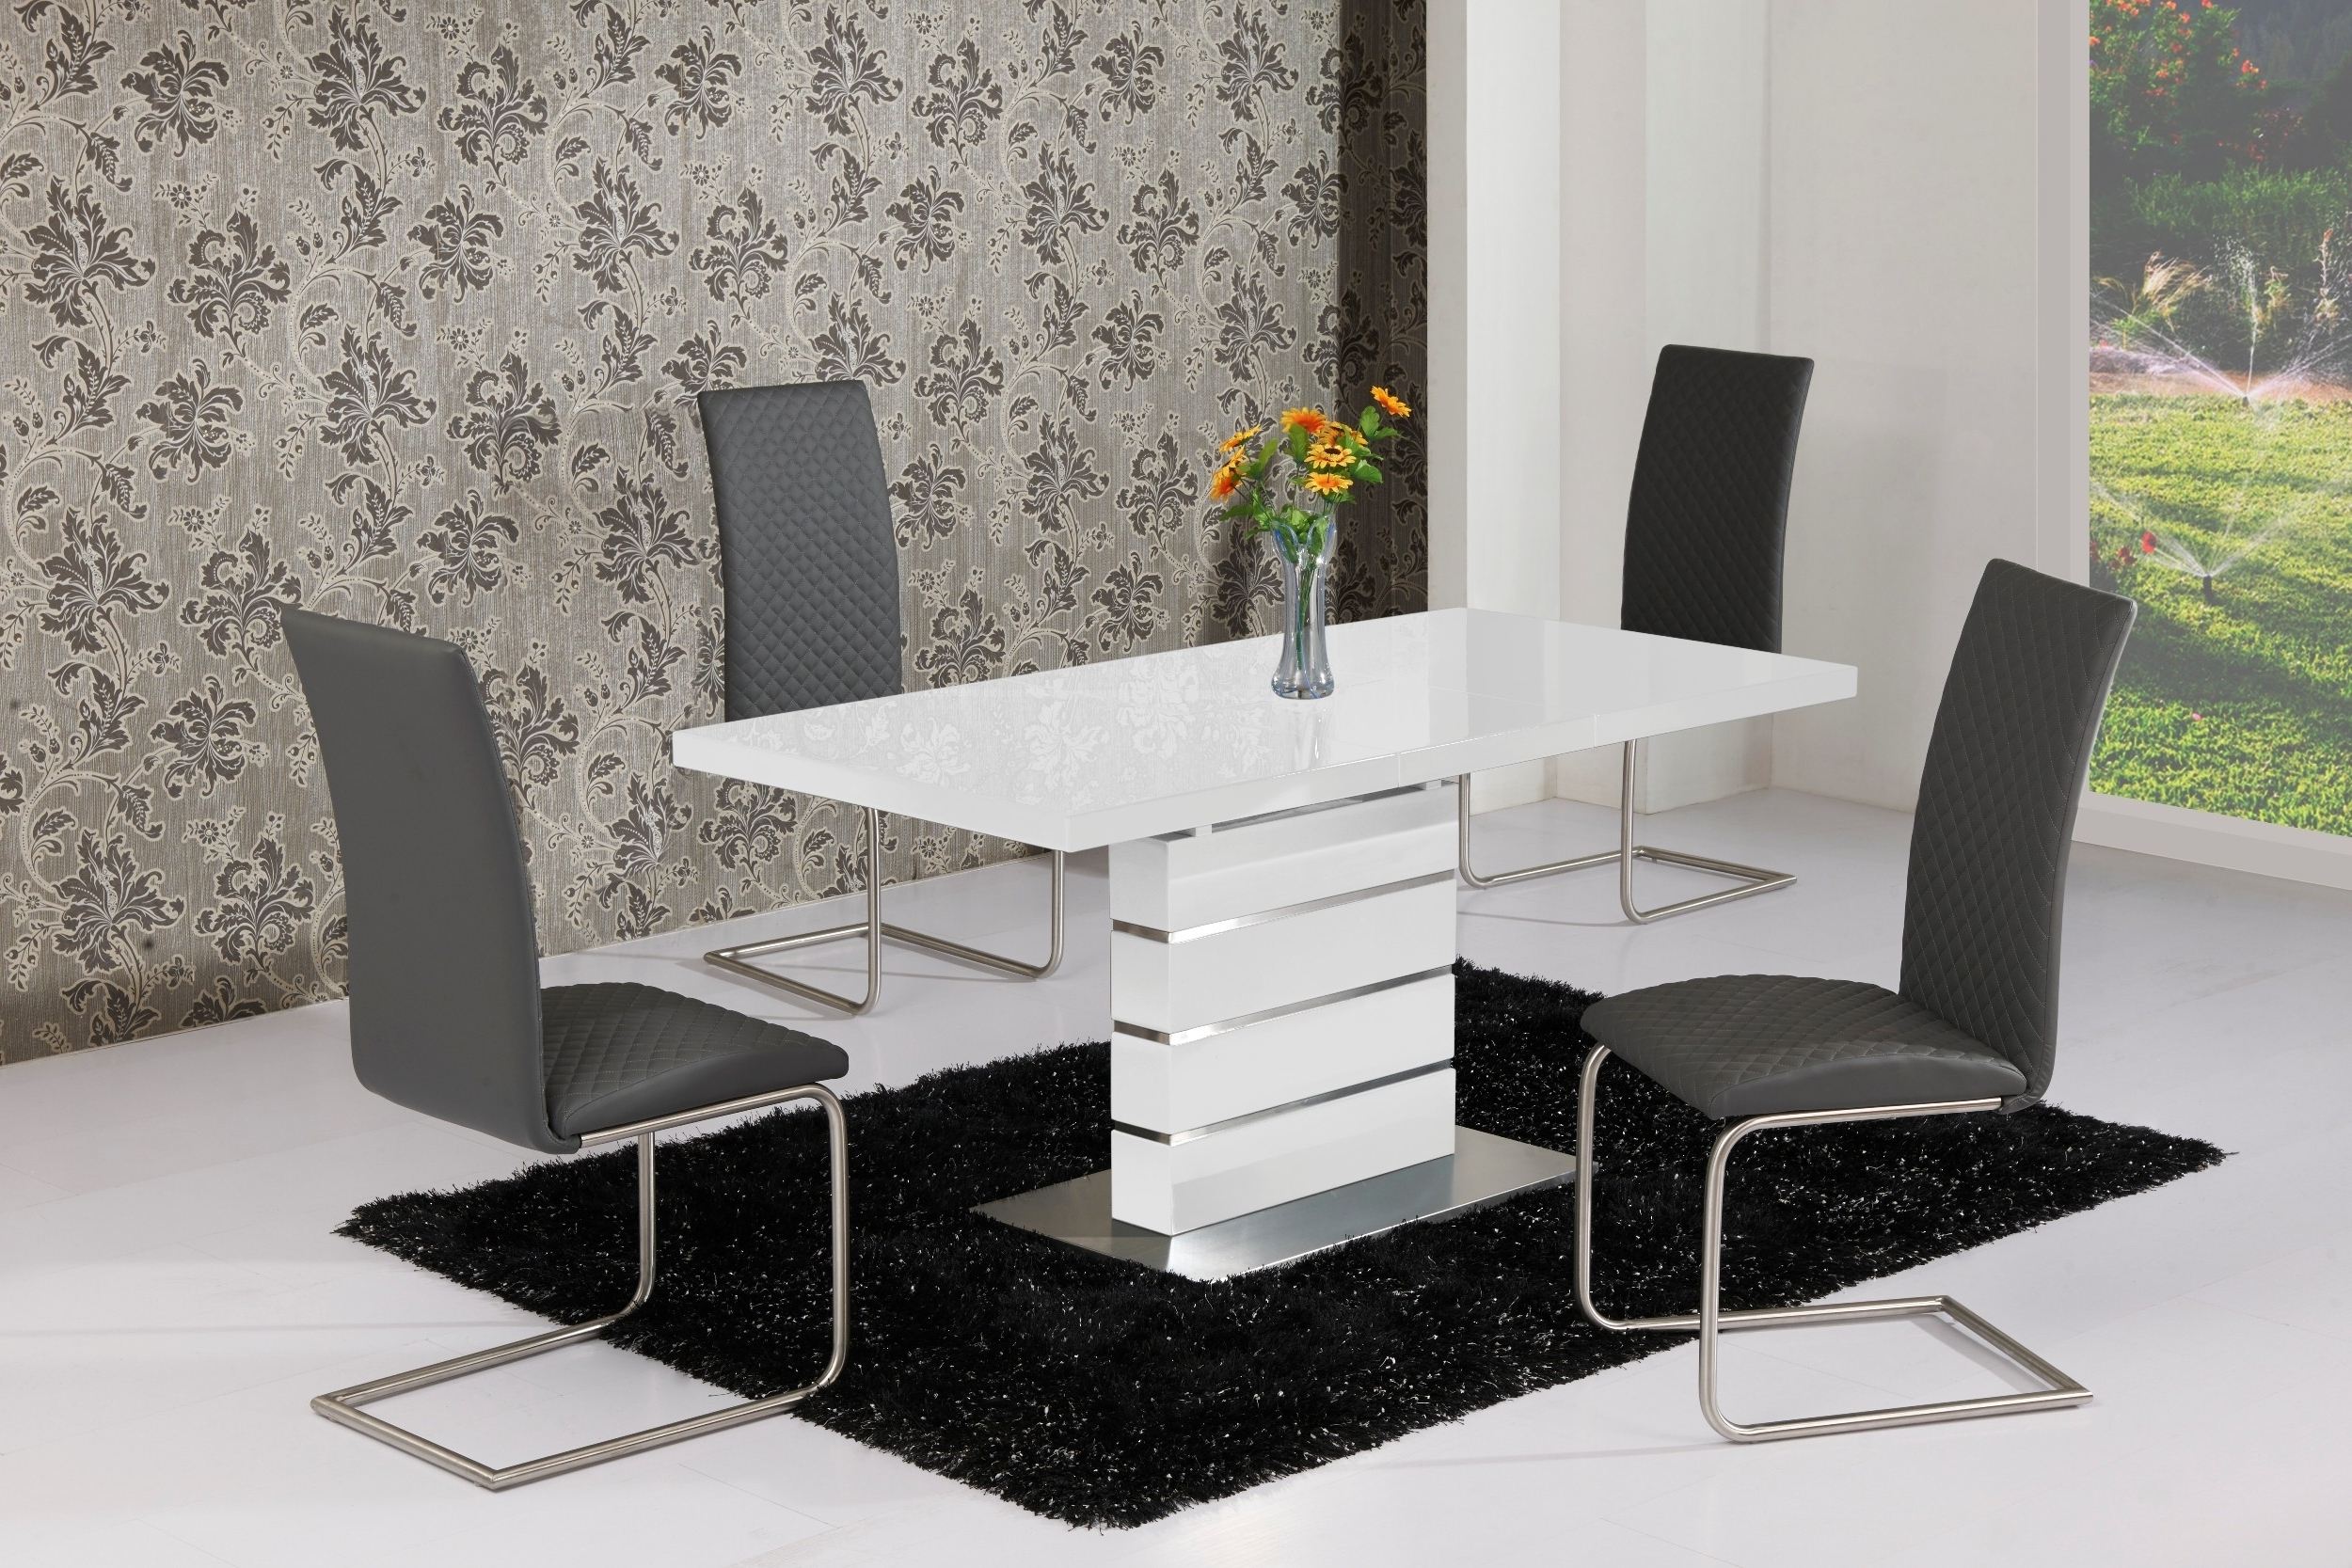 Popular White Gloss Dining Tables 120Cm Pertaining To Buy Allison Stylish High Gloss White Extending Table 120Cm – 160Cm (View 4 of 25)